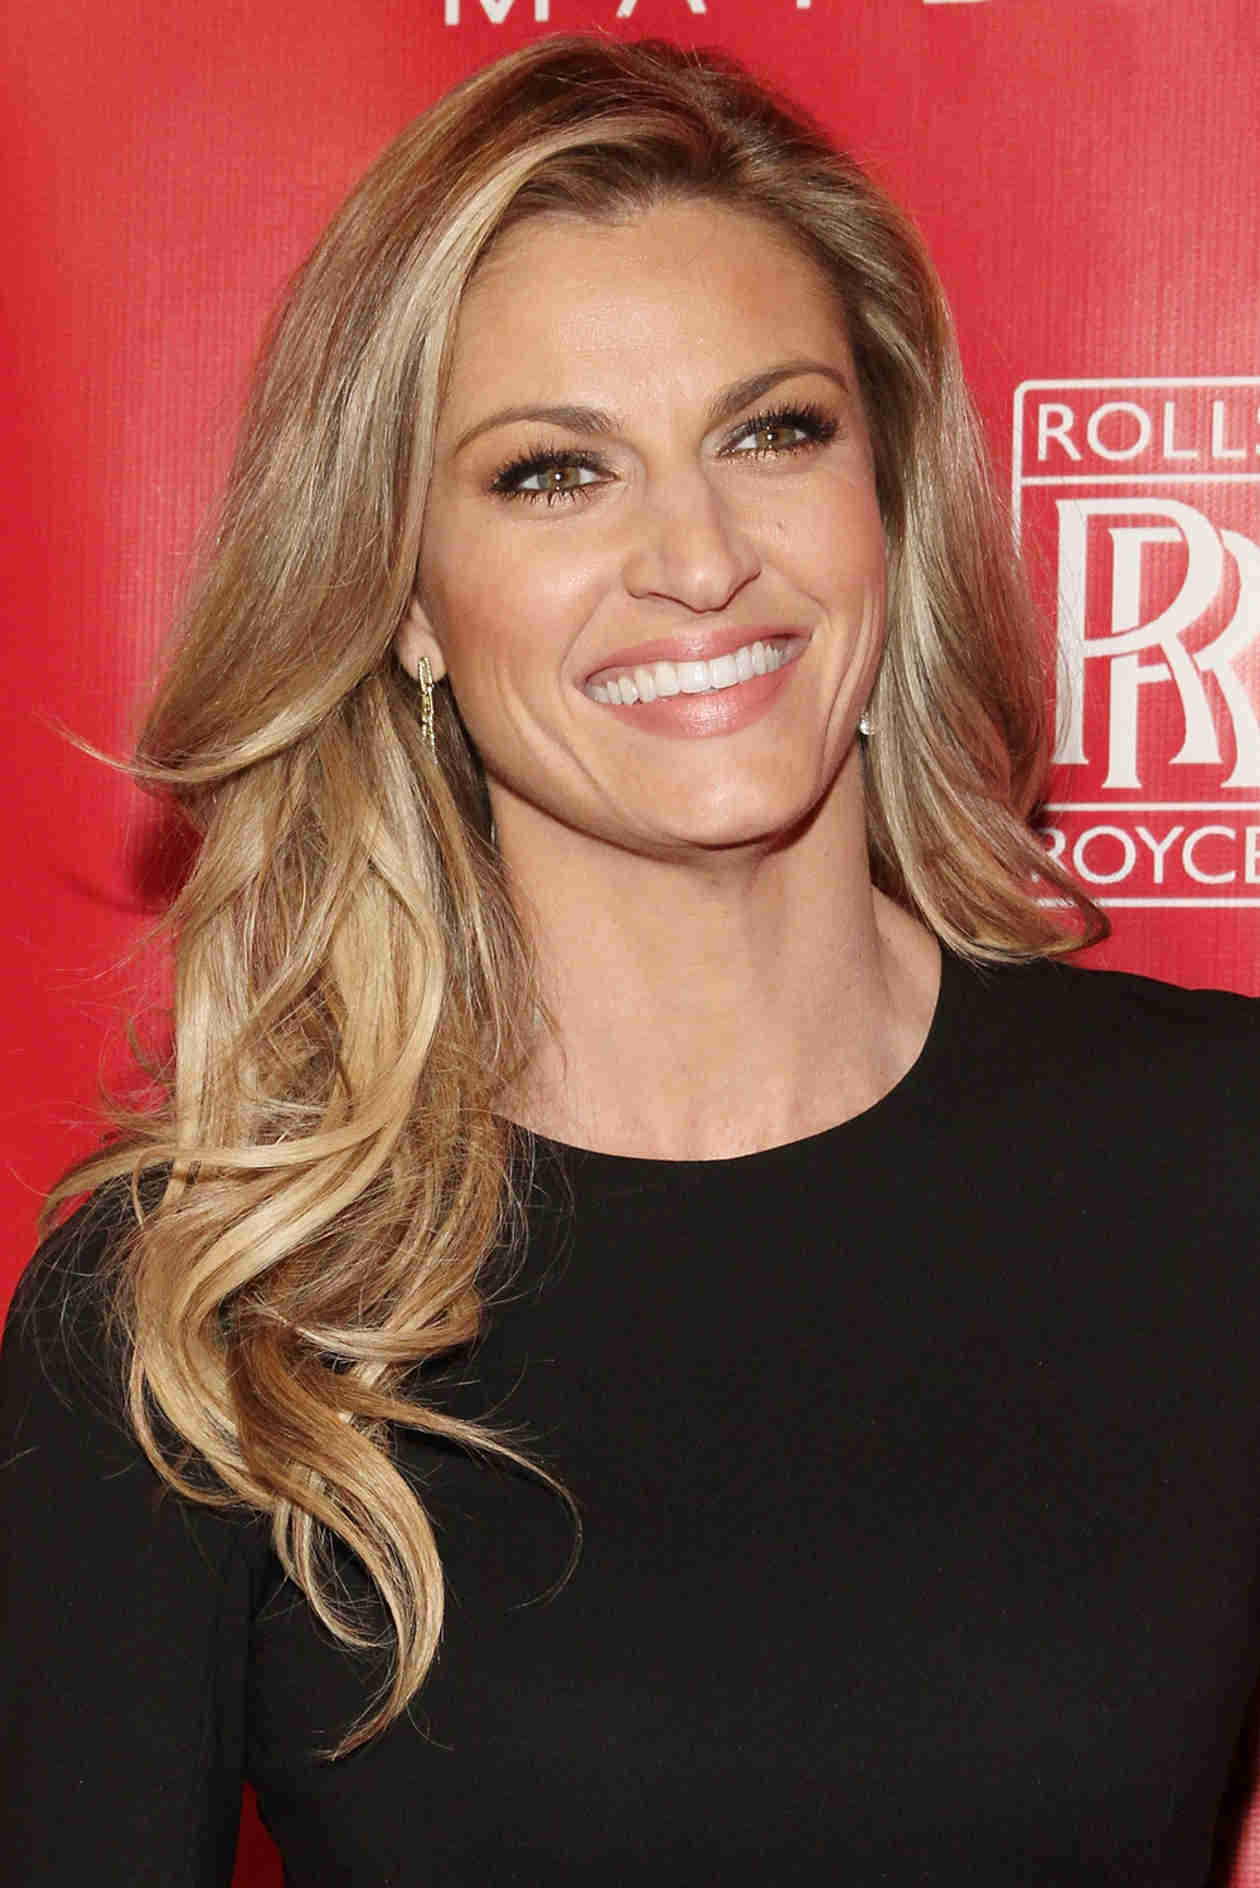 """Erin Andrews Reveals Favorite Dancing With the Stars Season 18 Contestant: """"I'm Kind of Obsessed With…"""""""